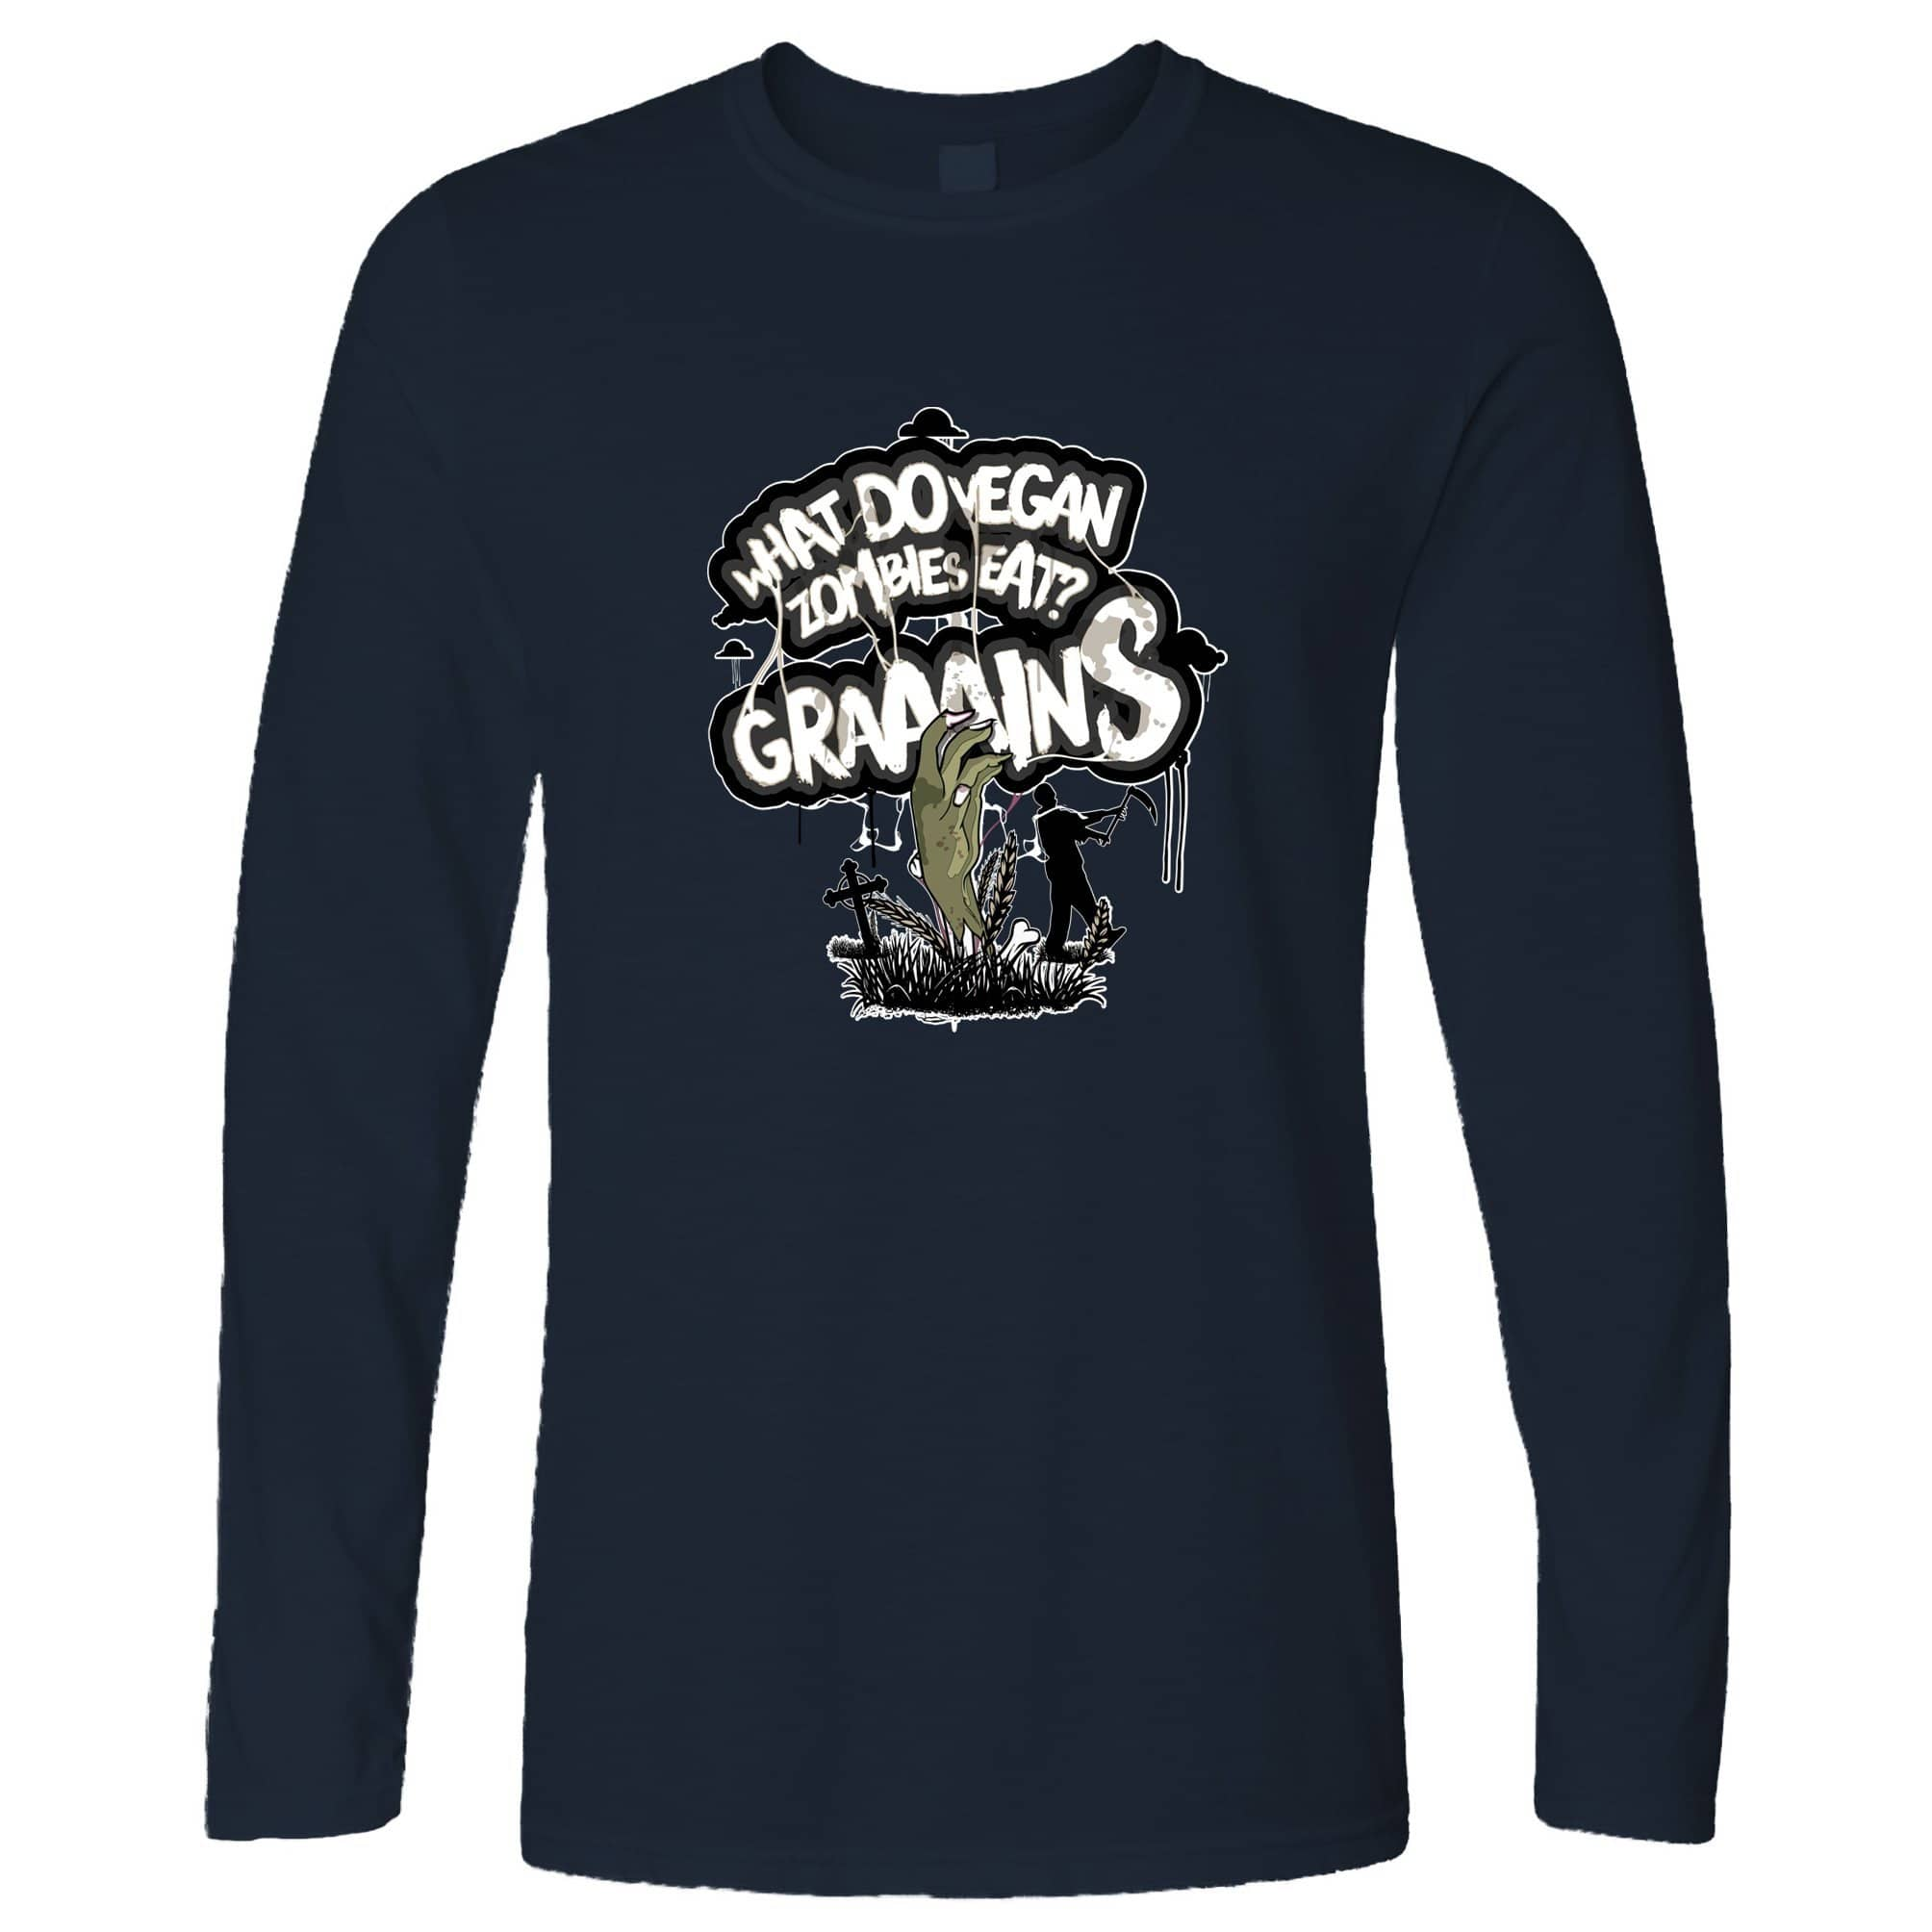 Novelty Long Sleeve What Do Vegan Zombies Eat? Grains! T-Shirt